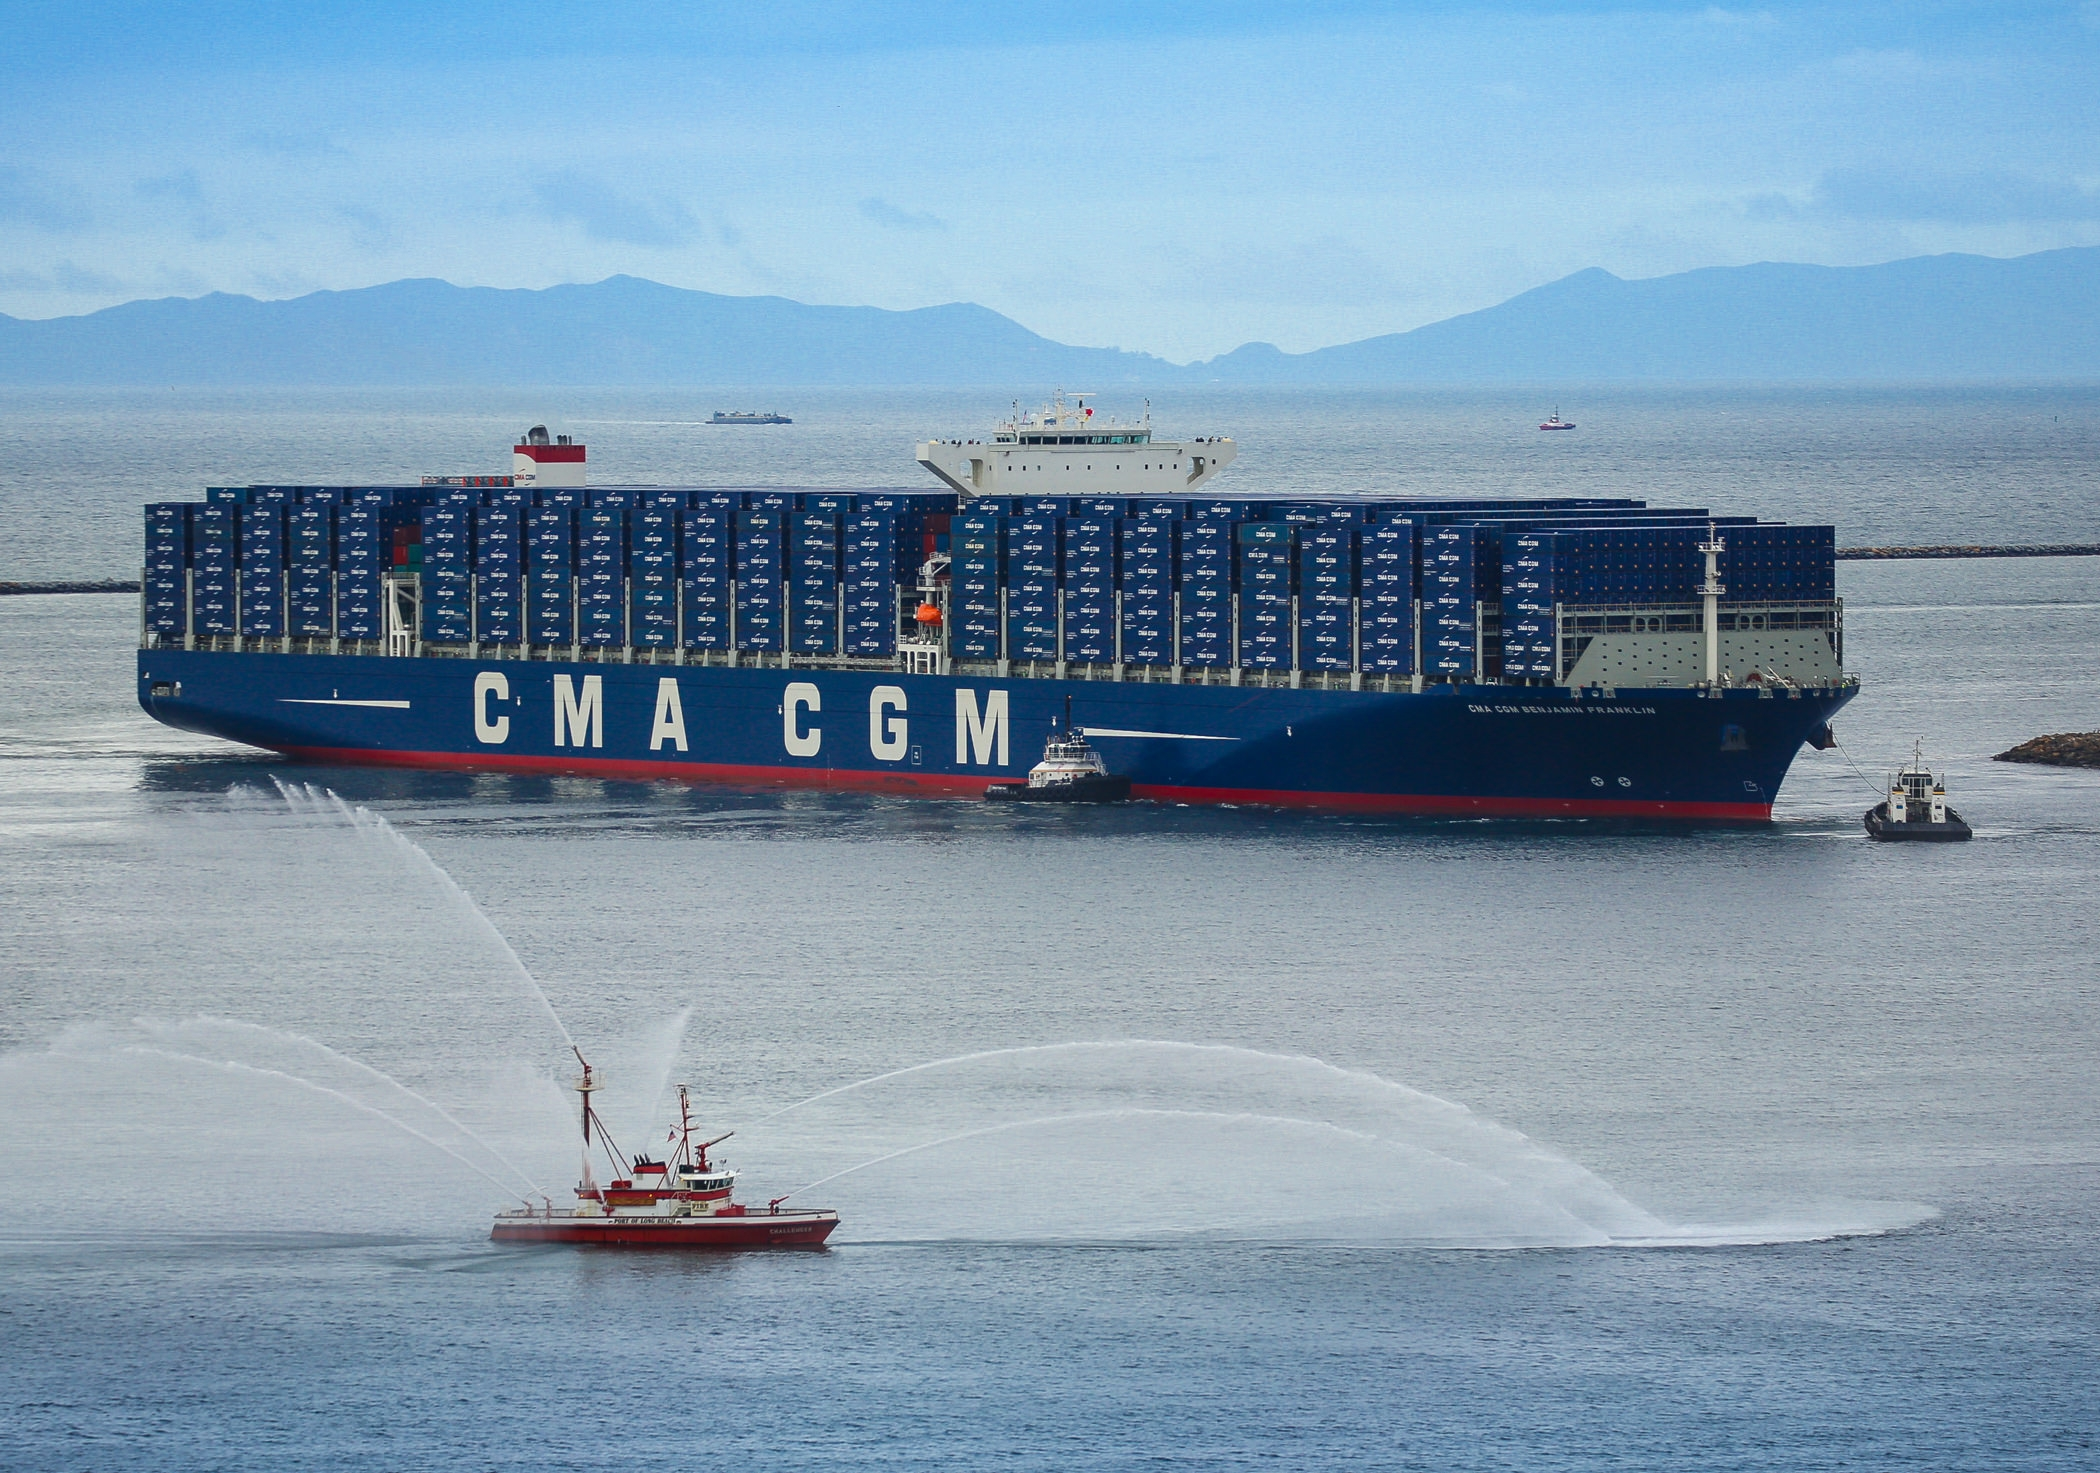 images/latest_news/1508735929cma cgm.jpg